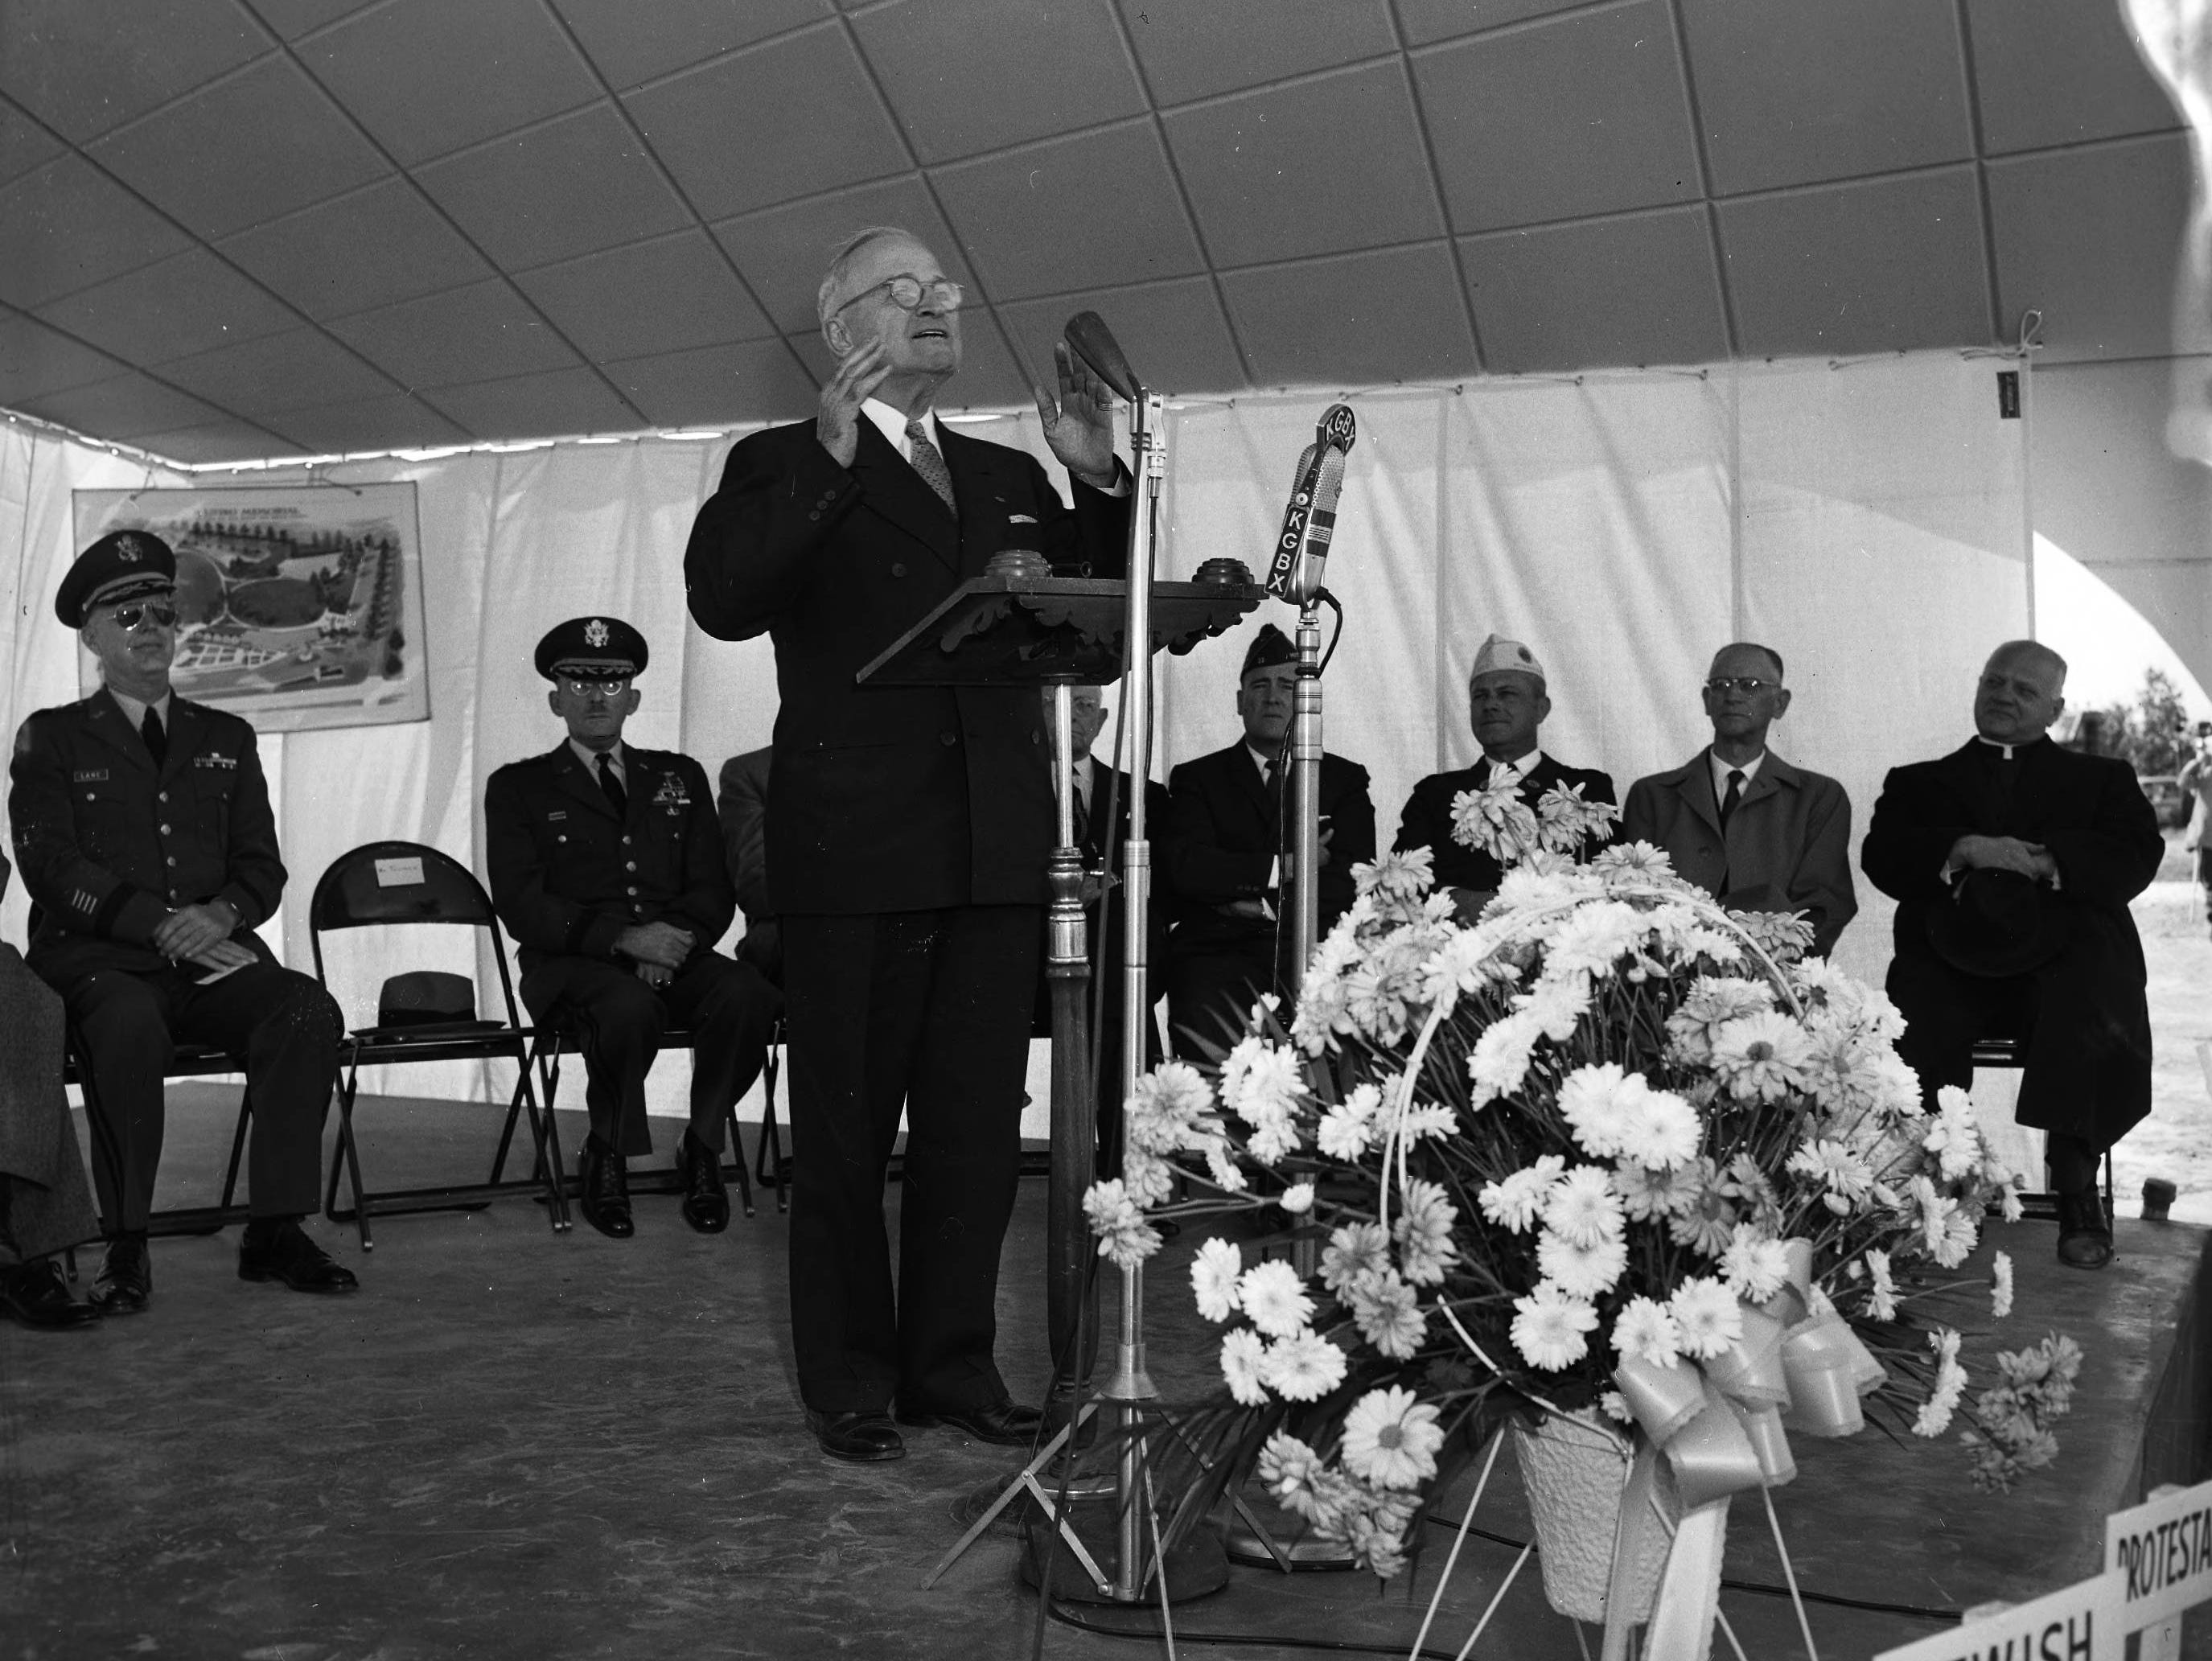 Former President Harry S. Truman spoke during ceremonies dedicating the Living Memorial on Highway 65. The memorial was a long-planned effort of the War Dads. Published in the Leader & Press on November 11, 1958.